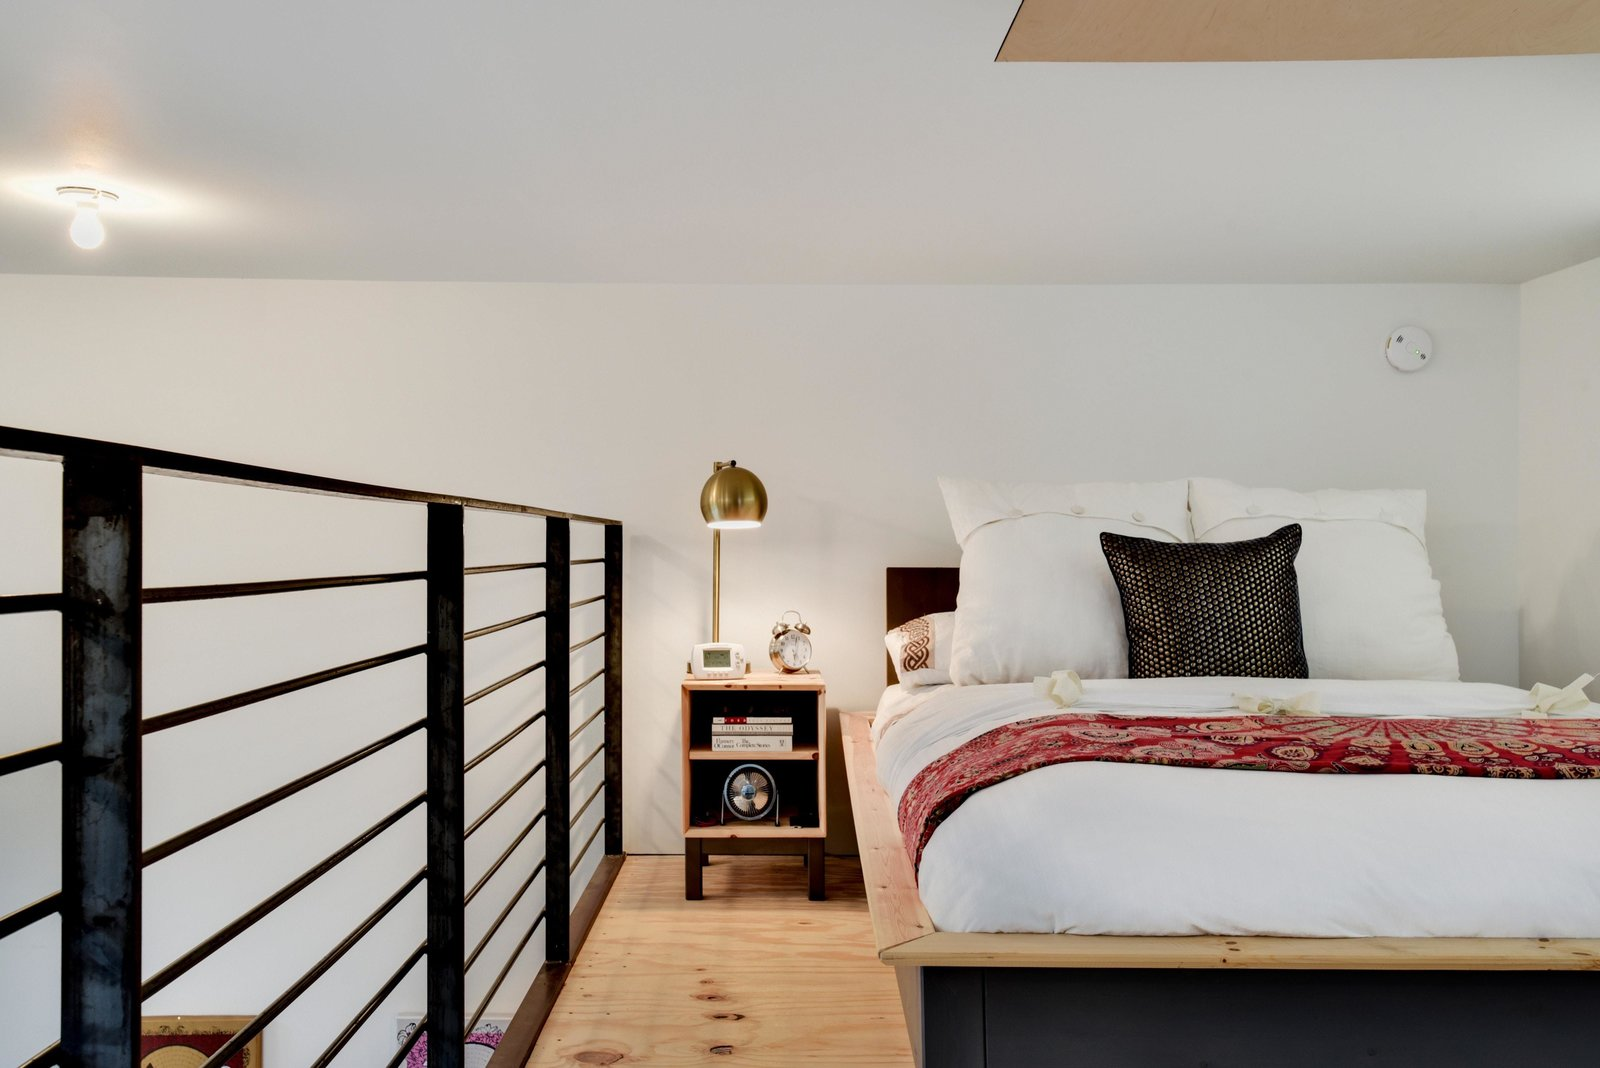 Bedroom, Bed, Night Stands, Medium Hardwood Floor, Table Lighting, and Ceiling Lighting T  Photo 16 of 22 in Own This Alluring Sculptural Abode in Austin For $3.1M